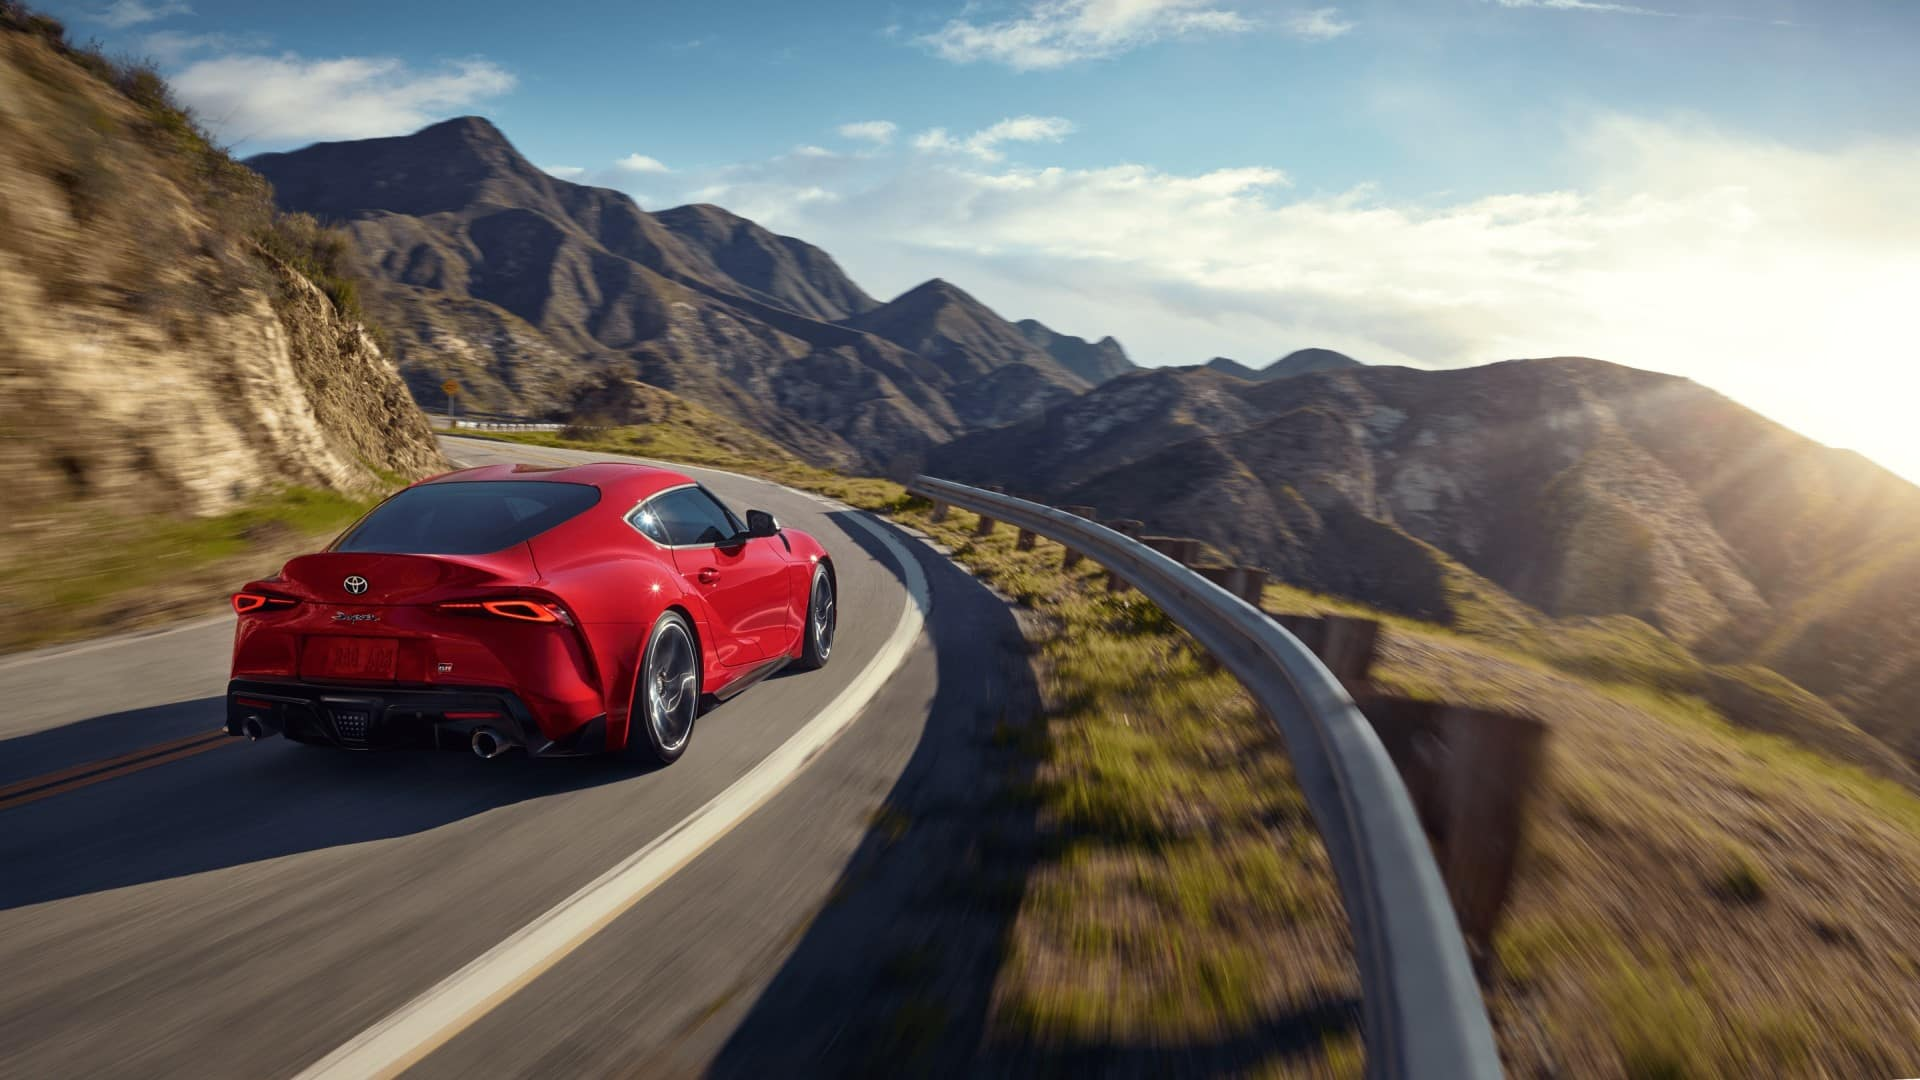 Toyota_Supra_Driving_On_Country_Road